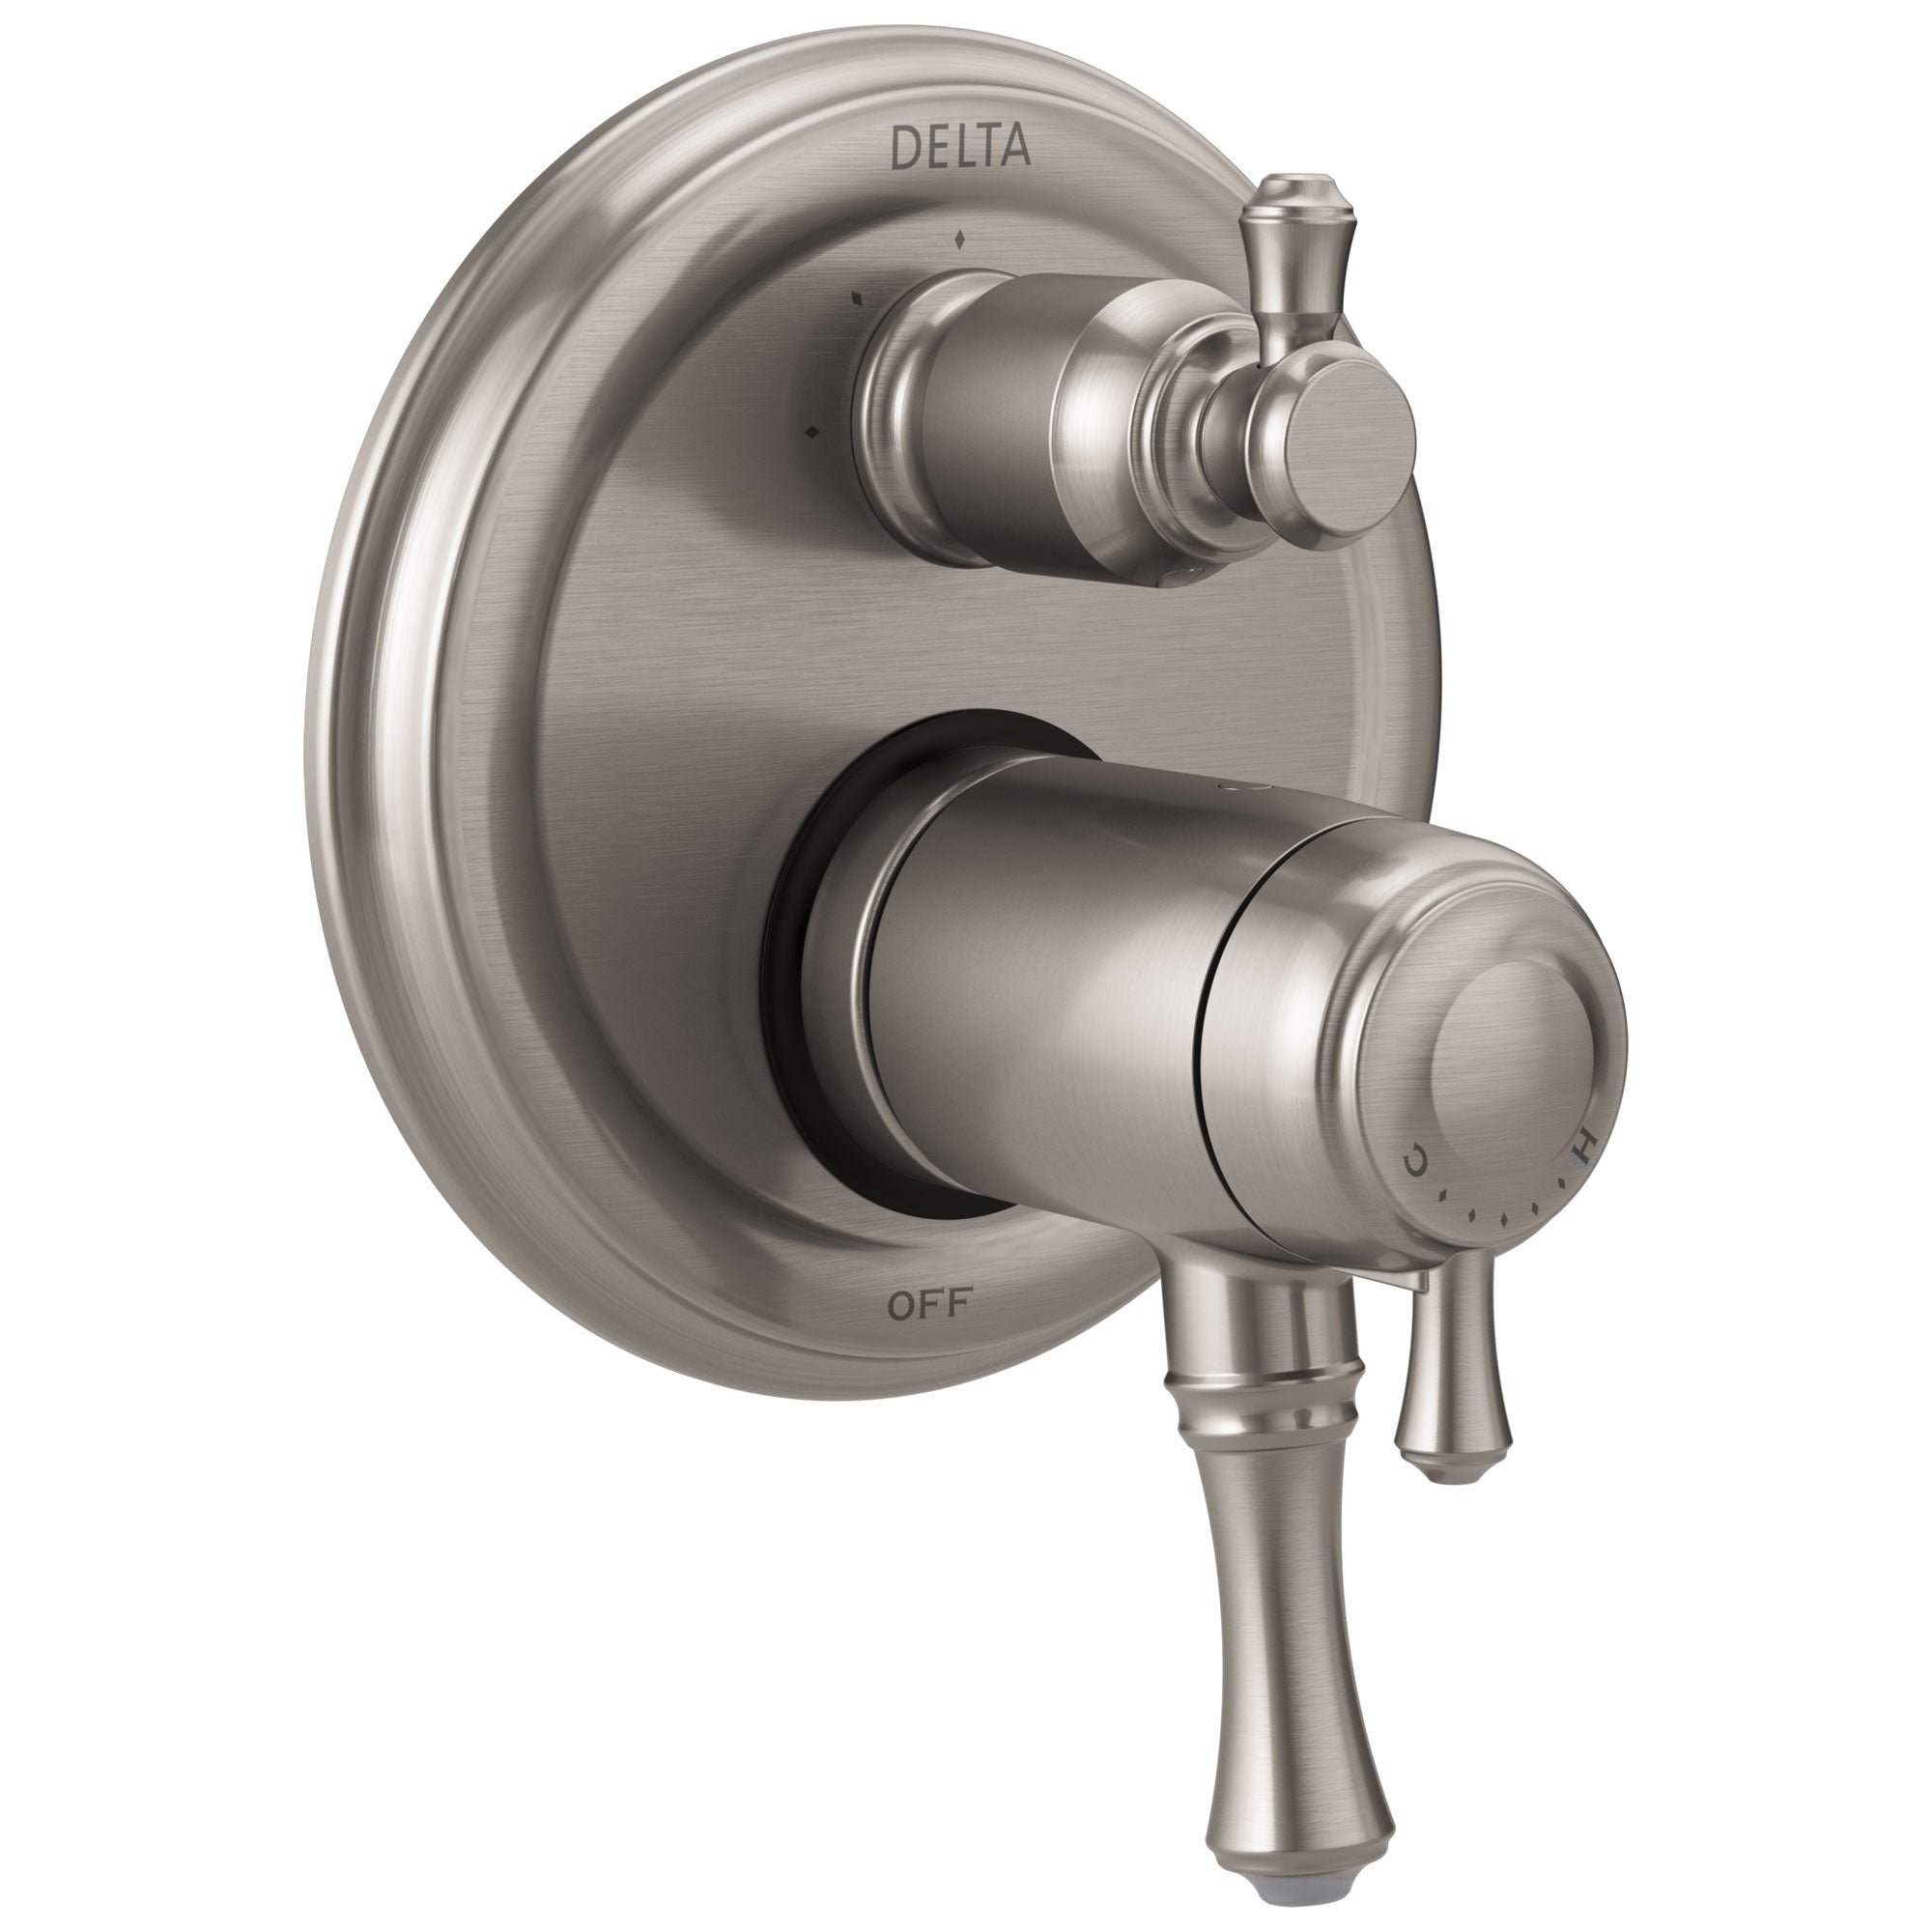 Delta Cassidy Collection Stainless Steel Finish Thermostatic Shower Faucet Control with 3-Setting Integrated Diverter Trim (Requires Valve) DT27T897SS